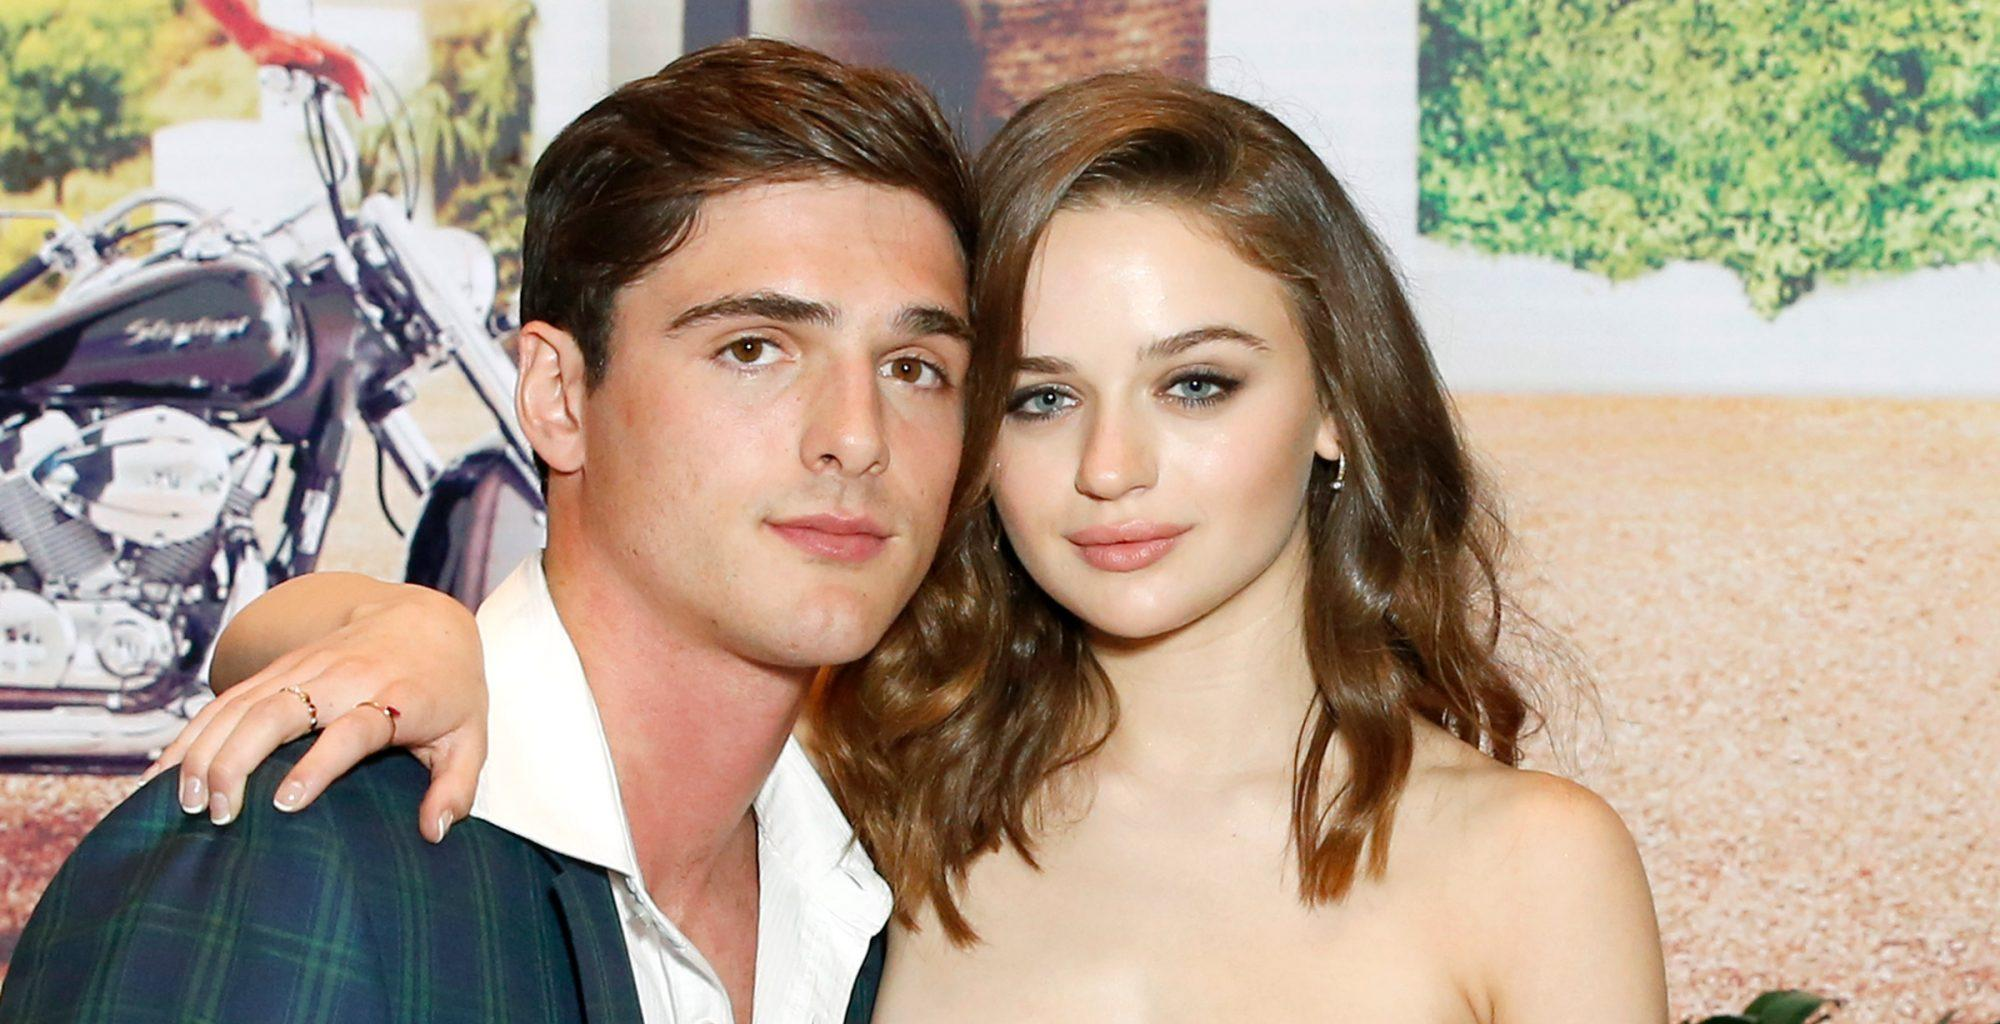 Joey King On Playing An On-Screen Couple With Ex Jacob Elordi: 'It Wasn't Easy'